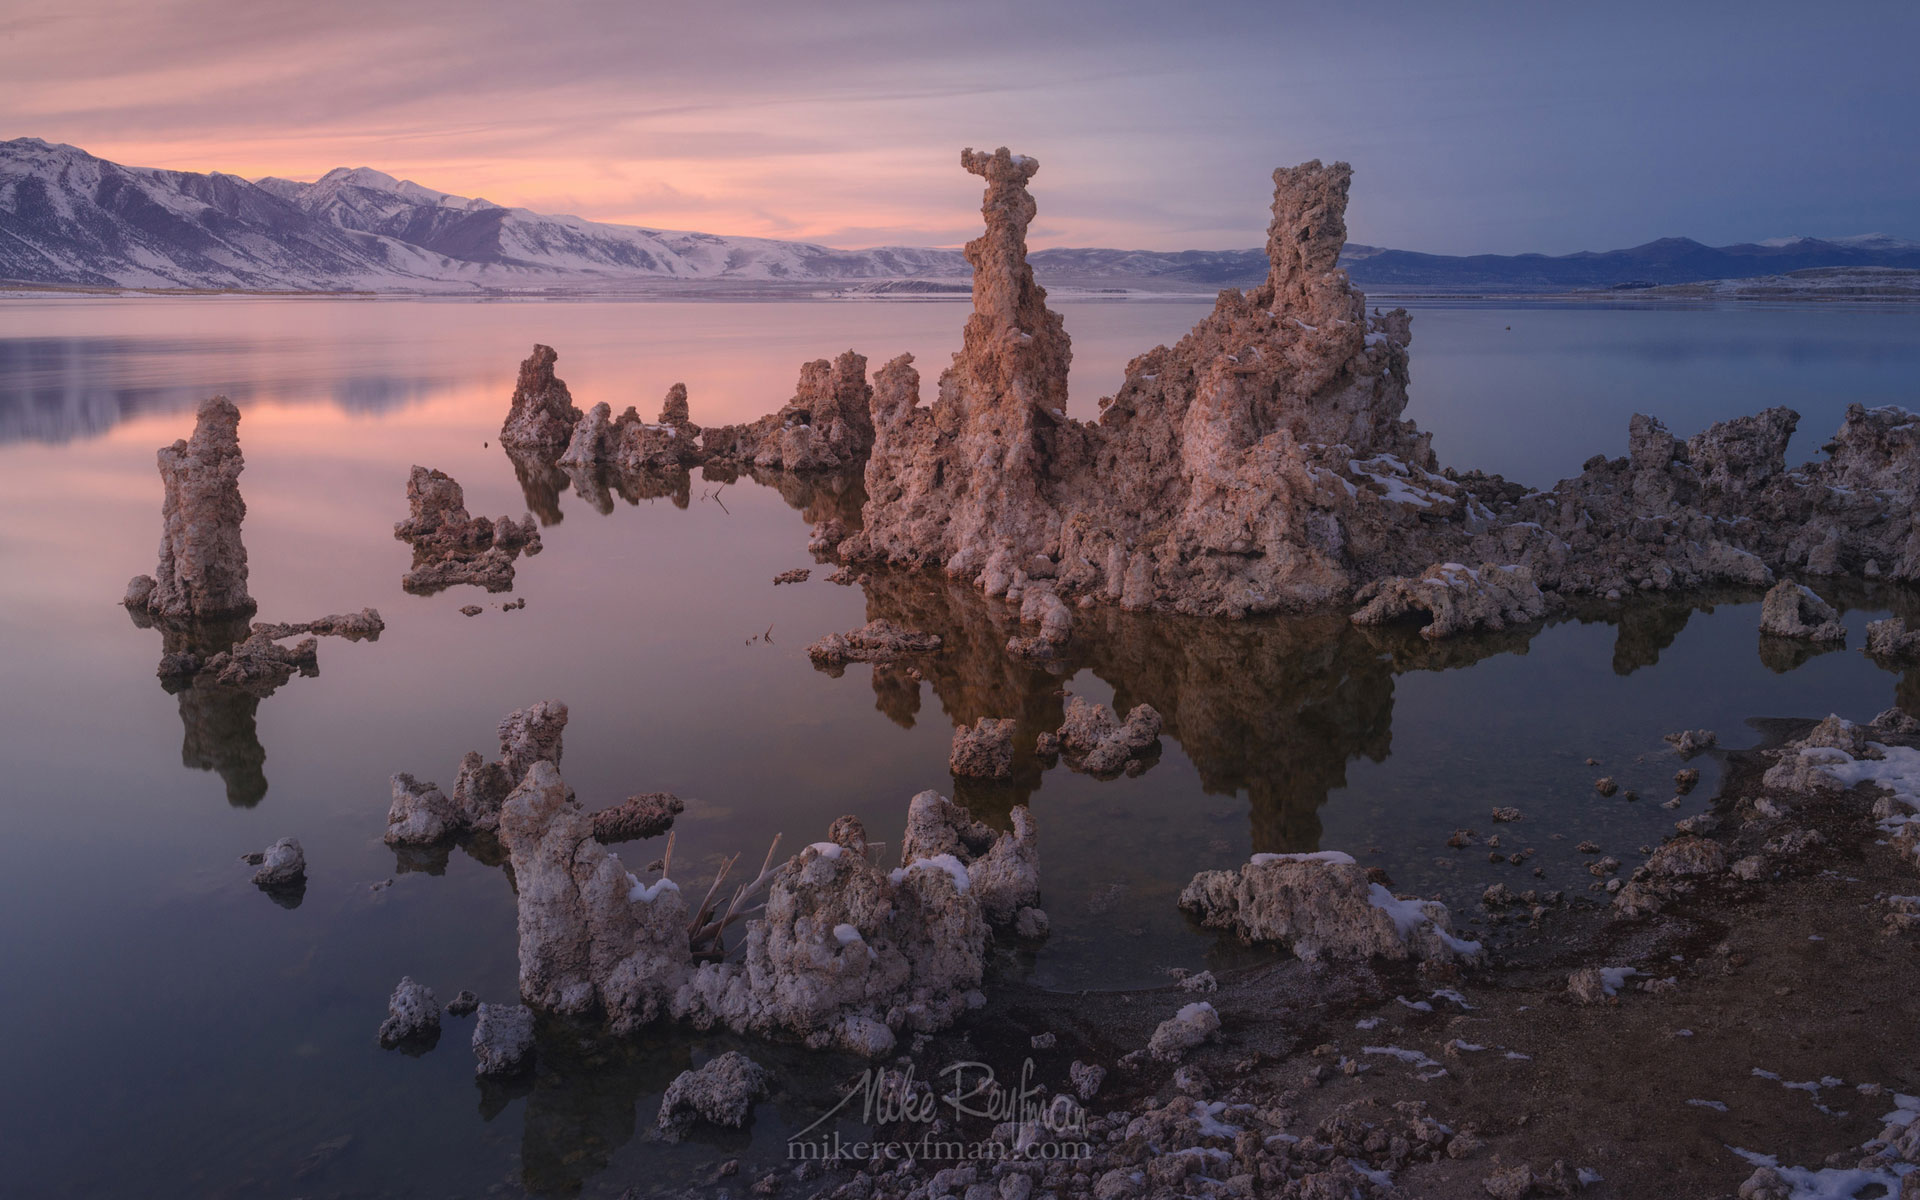 Mono Lake, Tufa State Natural Reserve, Eastern Sierra, California, USA ML1-MRN3X0682 - Mono Lake Tufa State Natural Reserve, Eastern Sierra, California - Mike Reyfman Photography